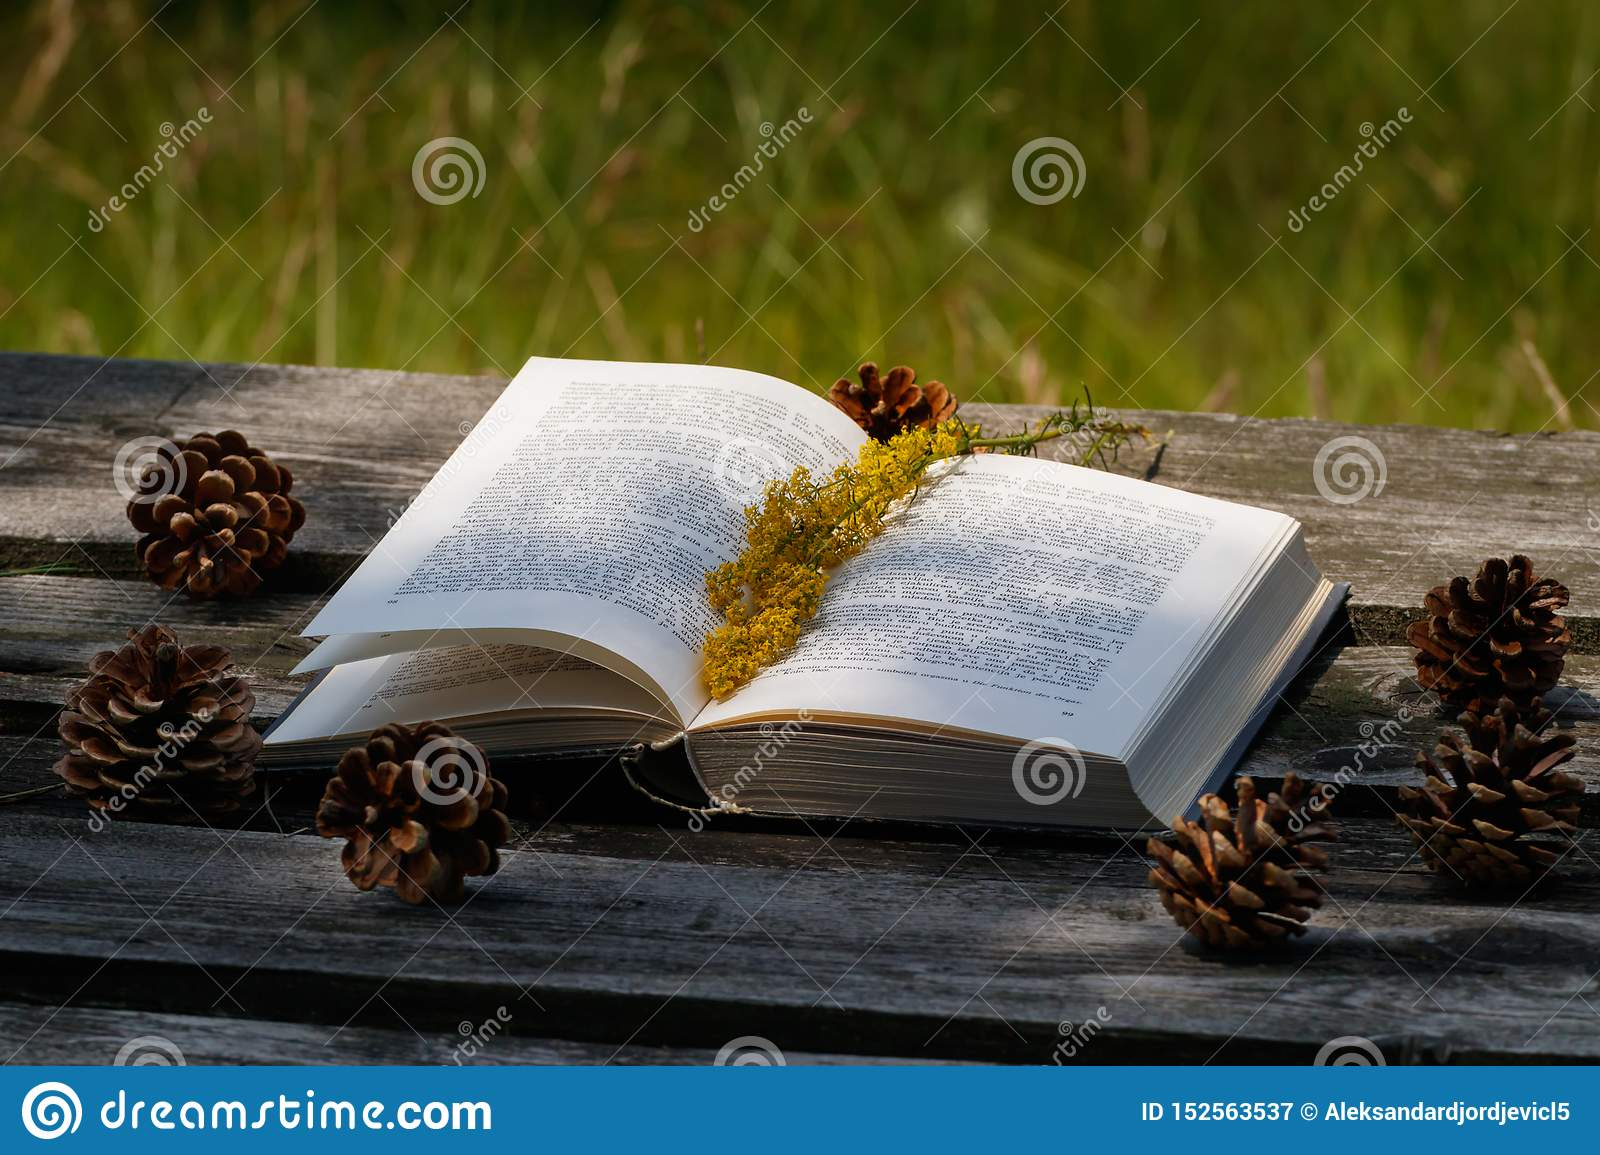 Opened book on the wooden table outdoors